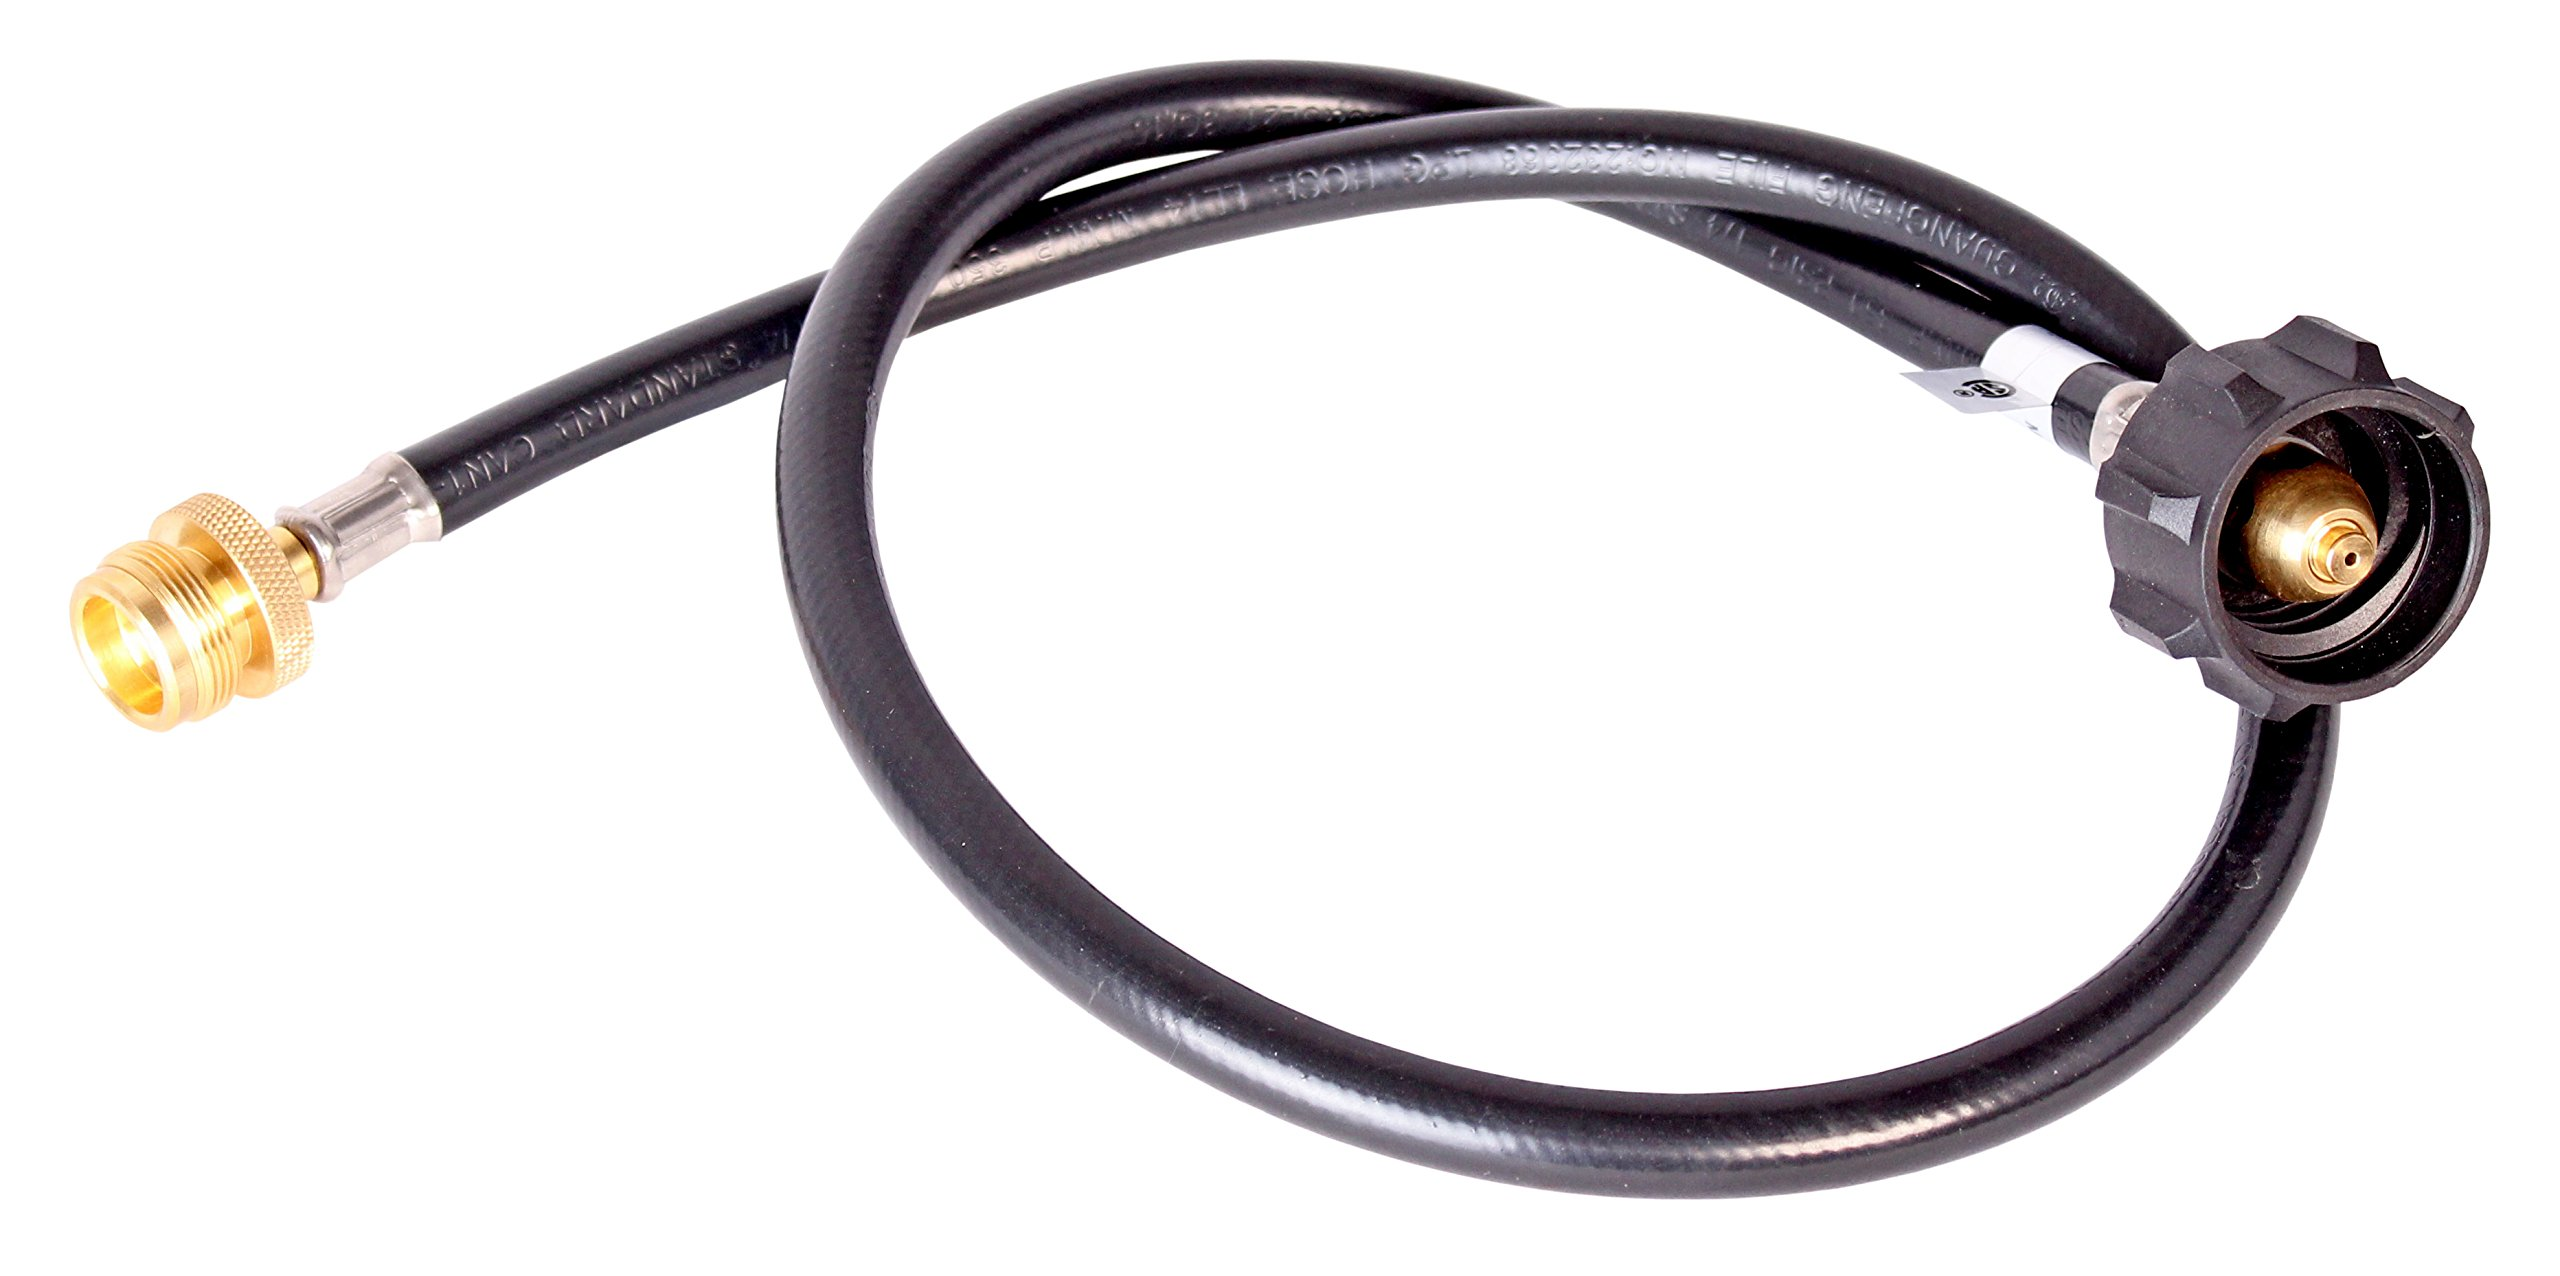 Blackstone 1690 Bulk Adapter Hose- 3 Foot - Gas Tank Converter